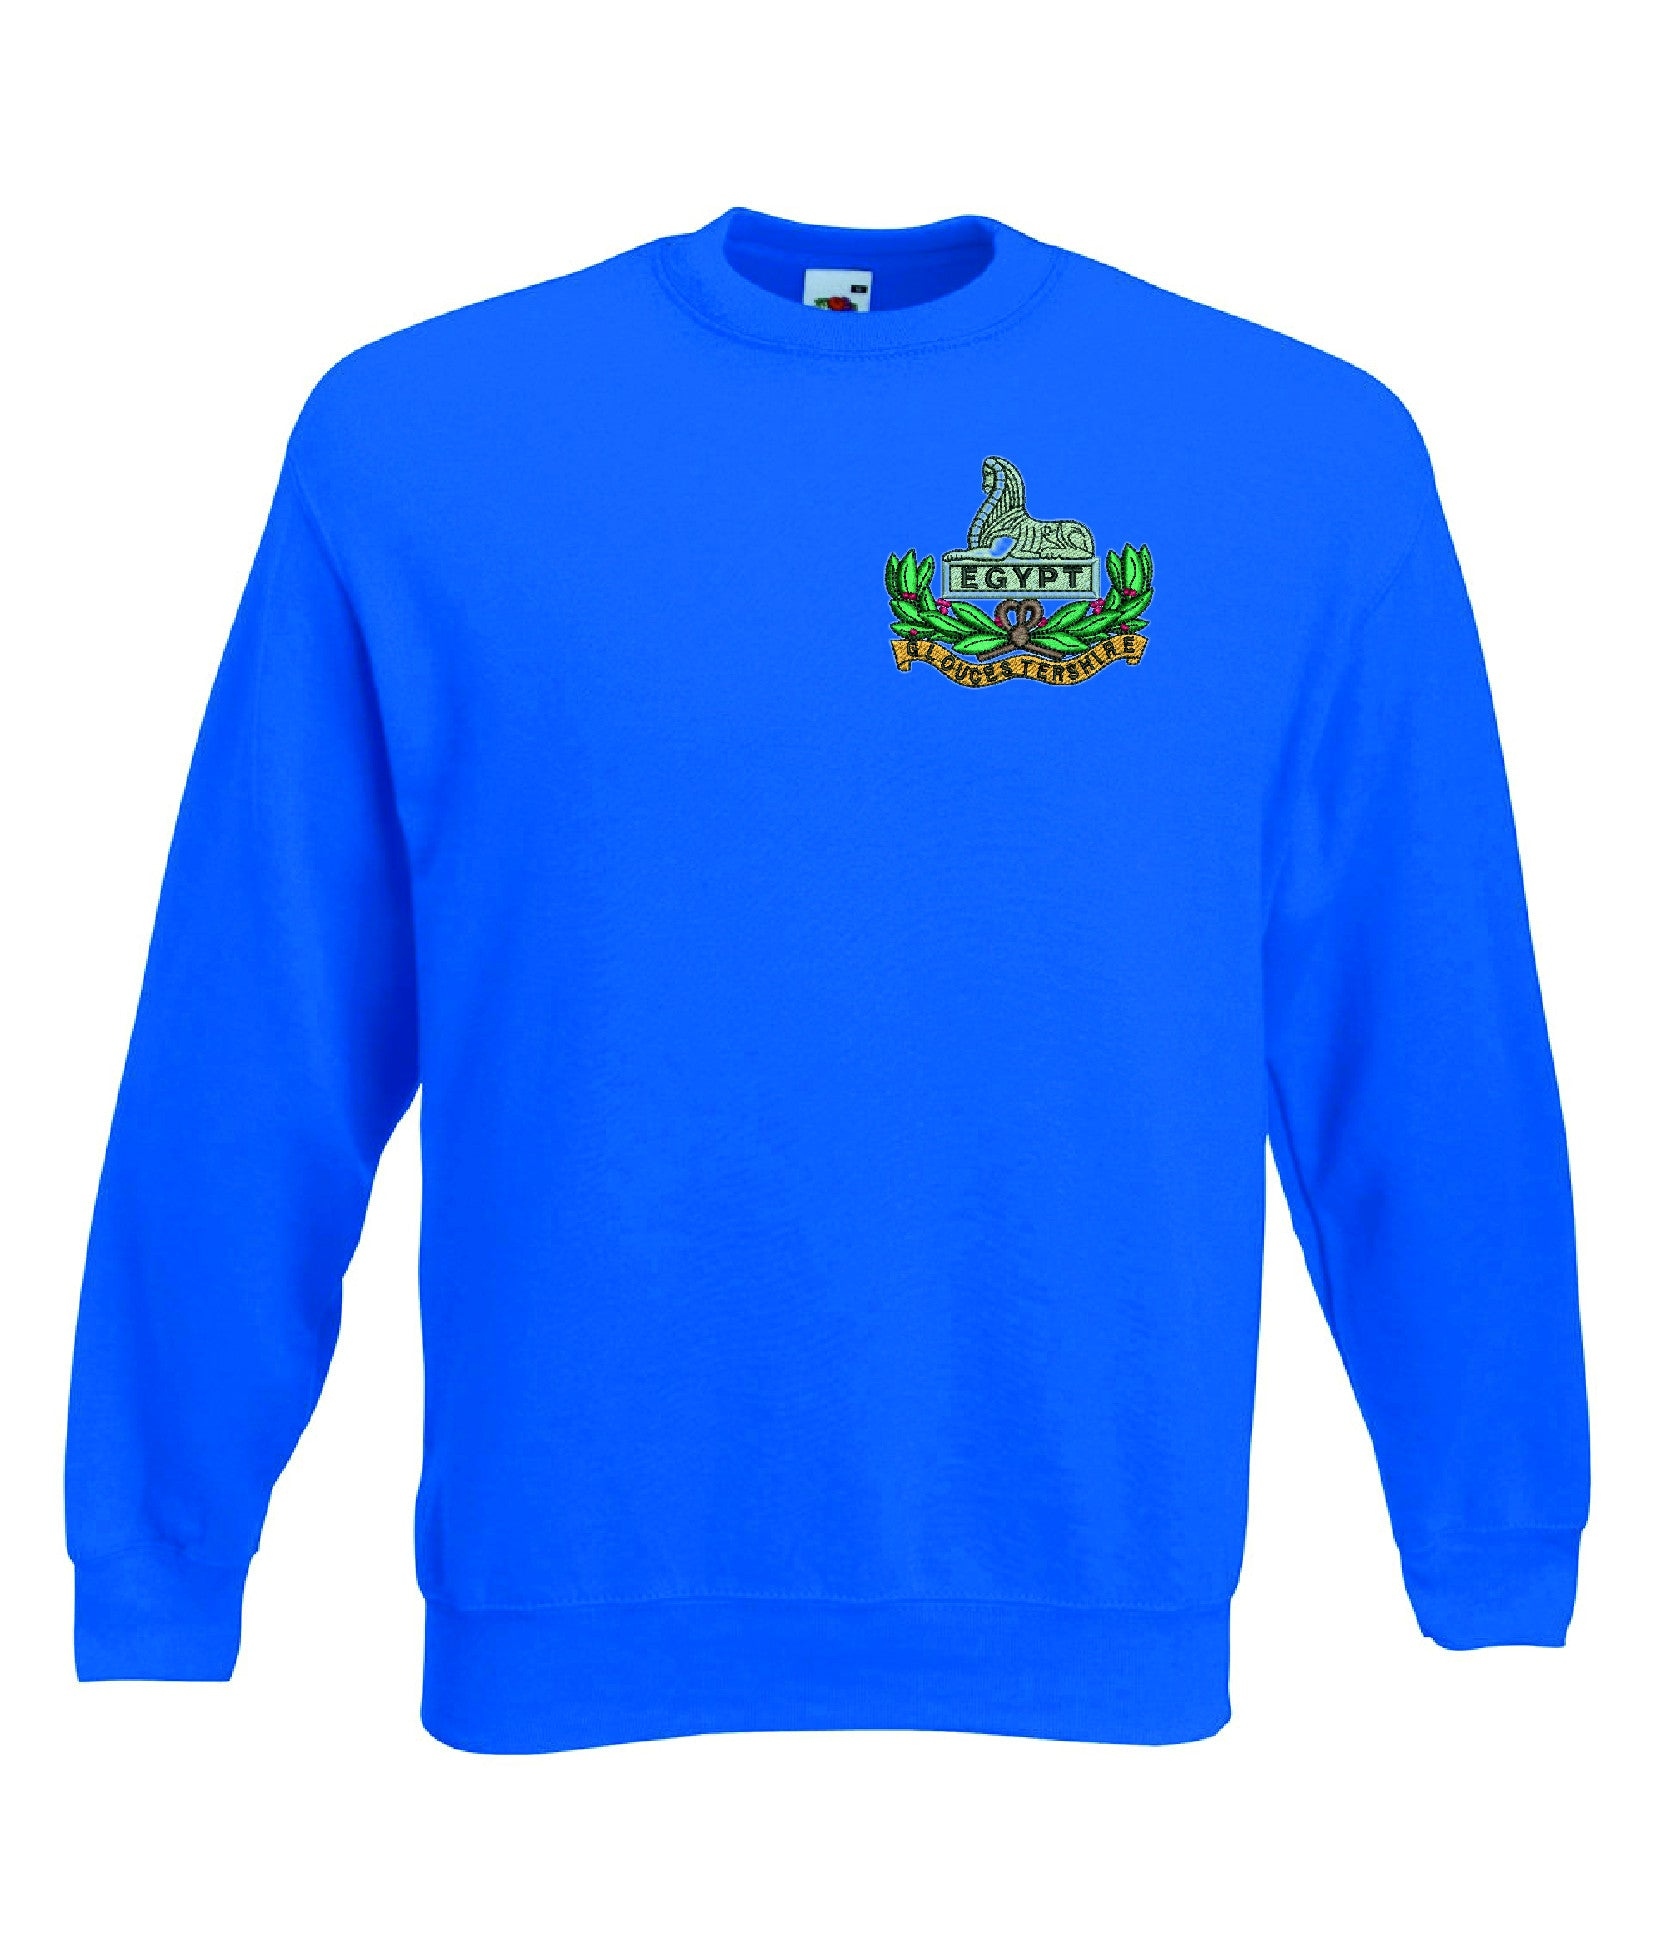 Gloucestershire Regiment Sweatshirt